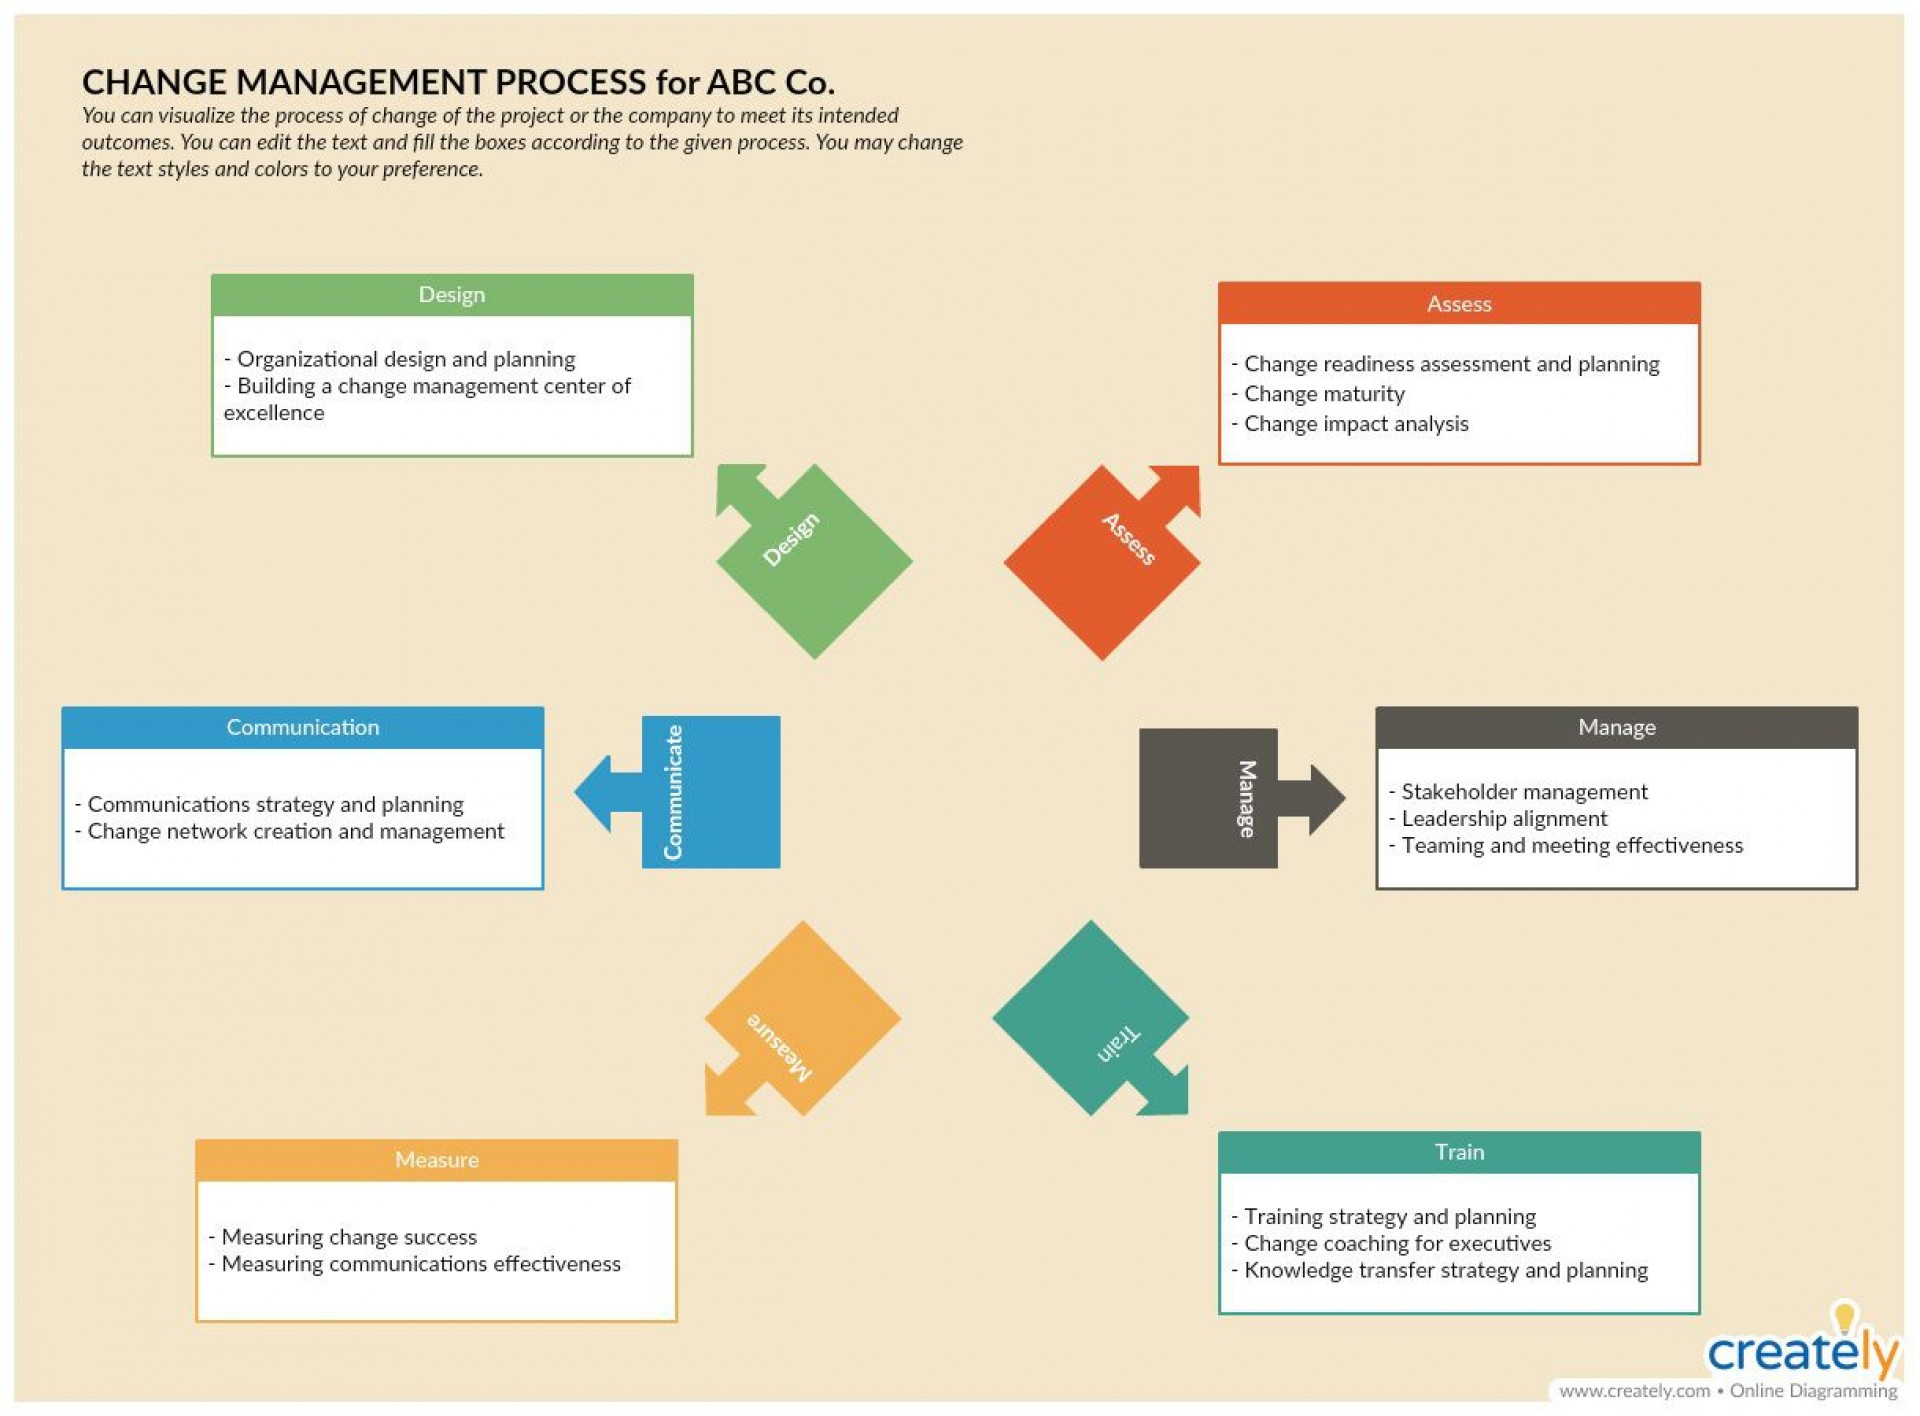 003 Fearsome Change Management Plan Template Photo  Templates1920